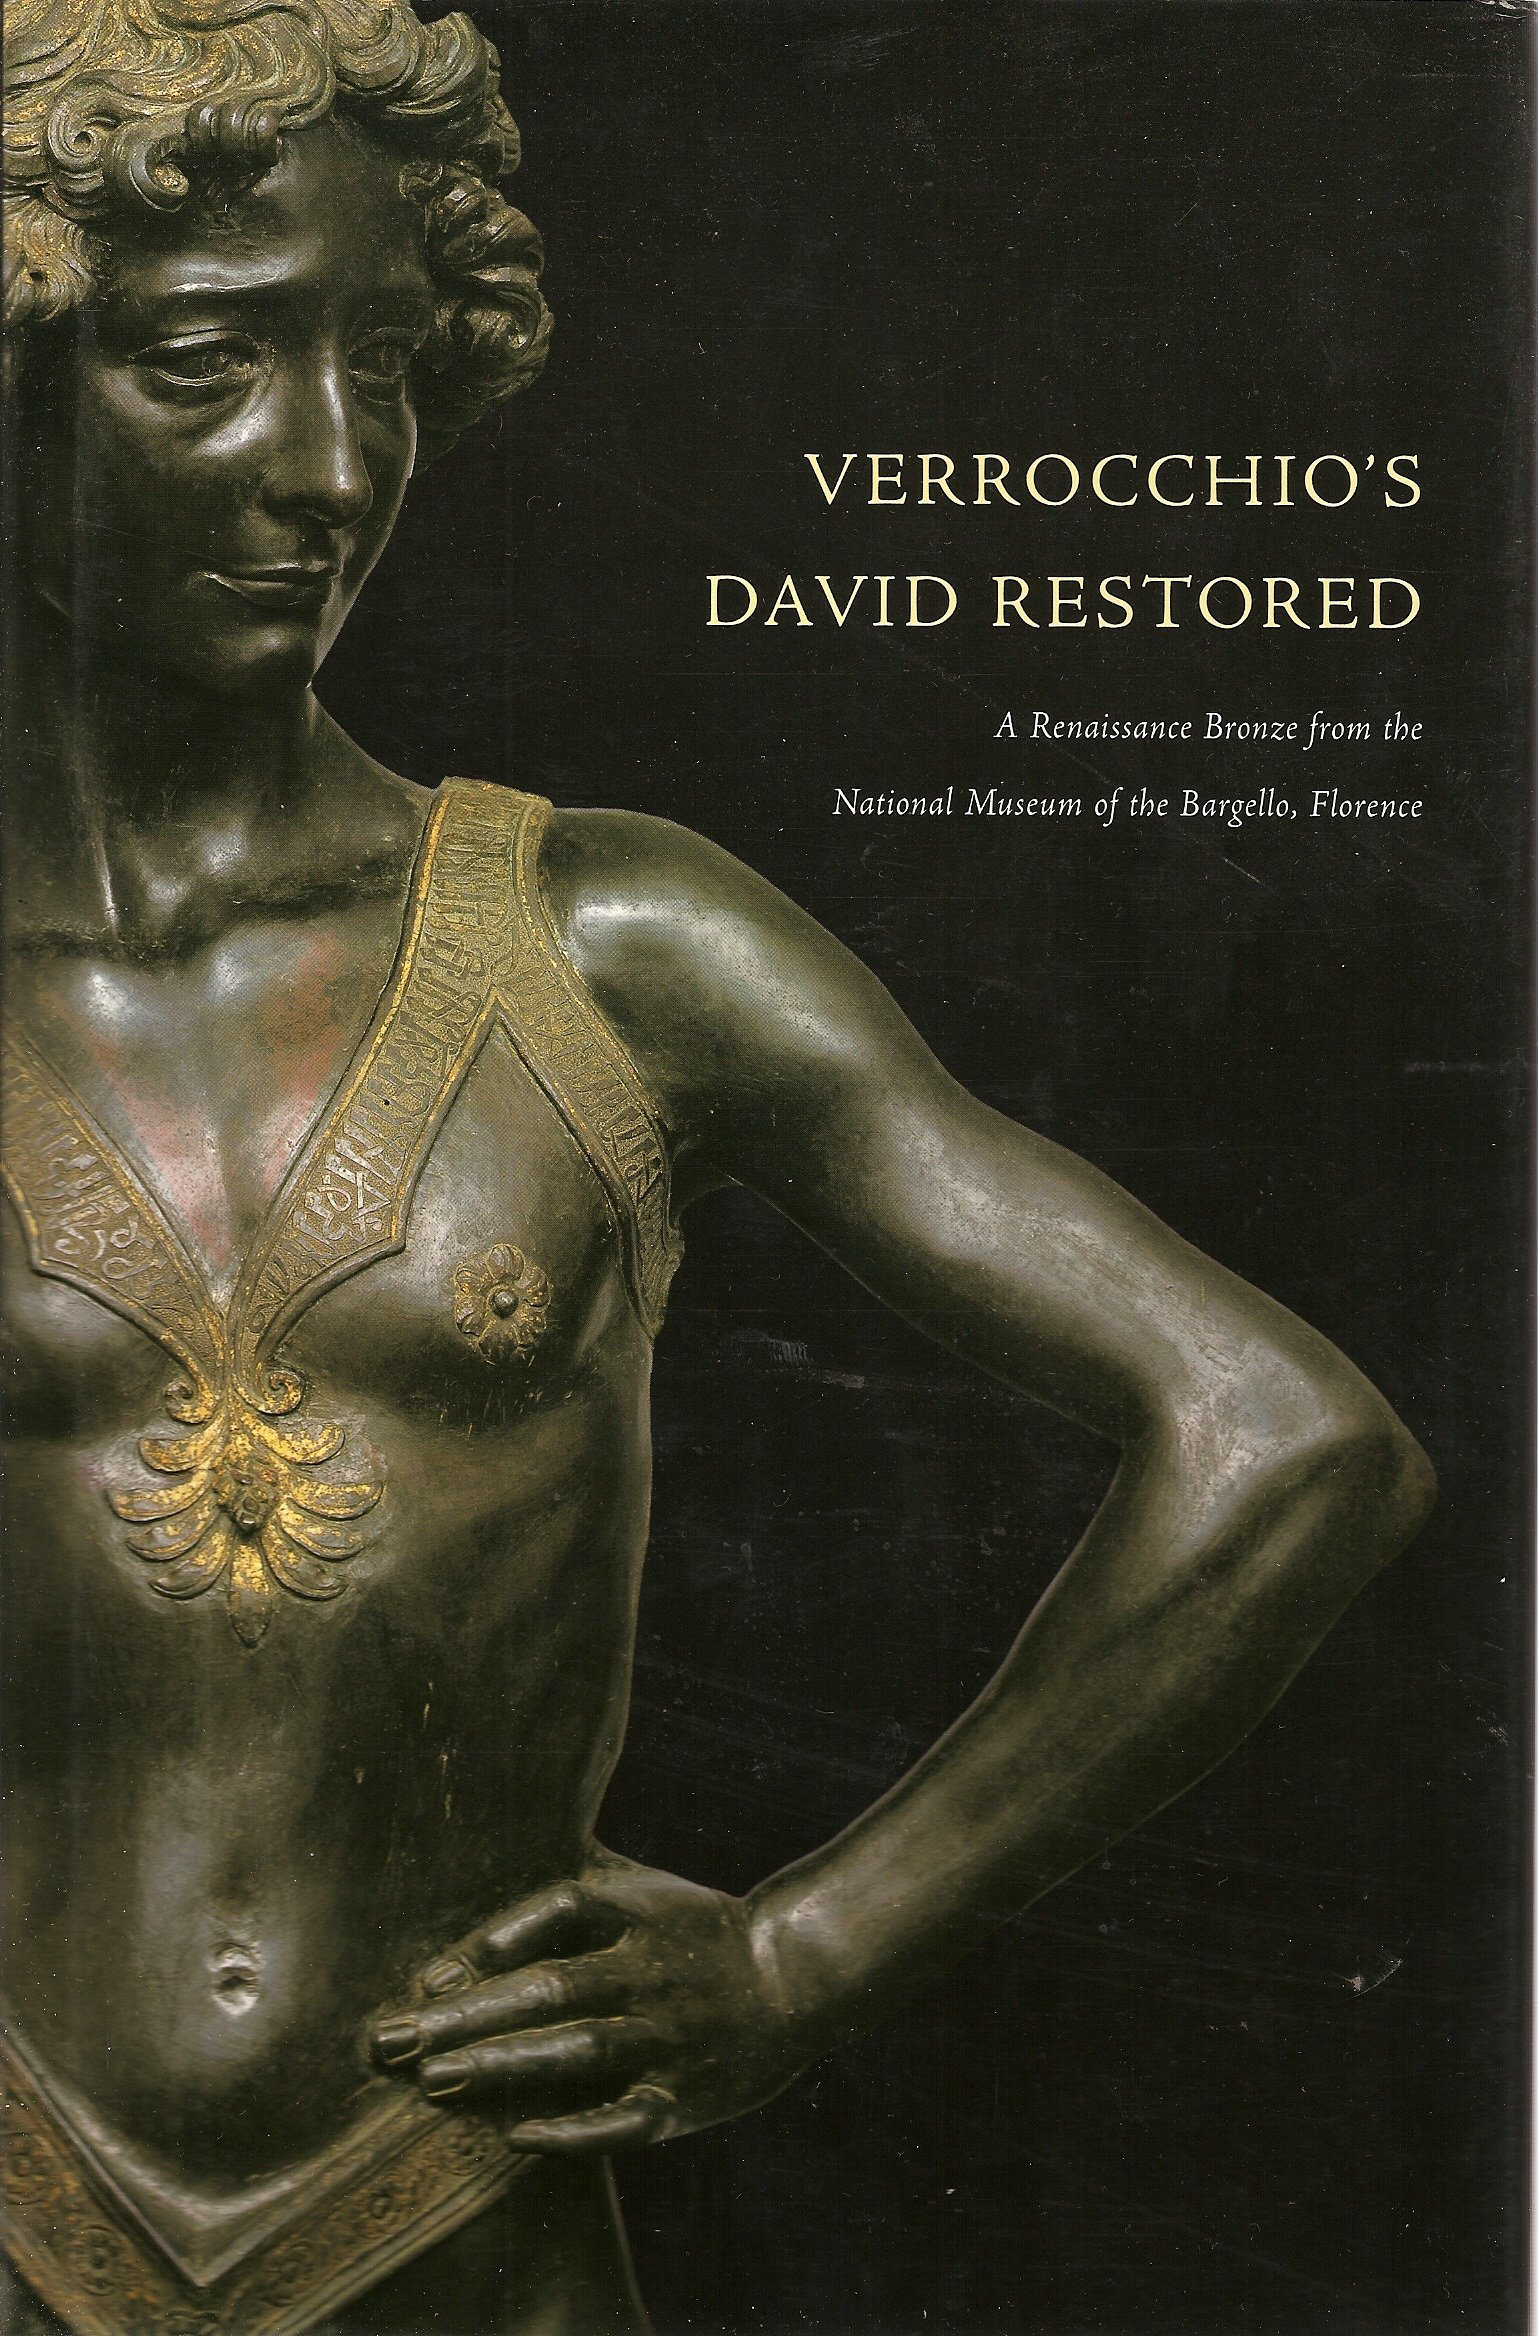 Verrocchio's David Restored: A Renaissance Bronze from the National Museum of the Bargello, Florence